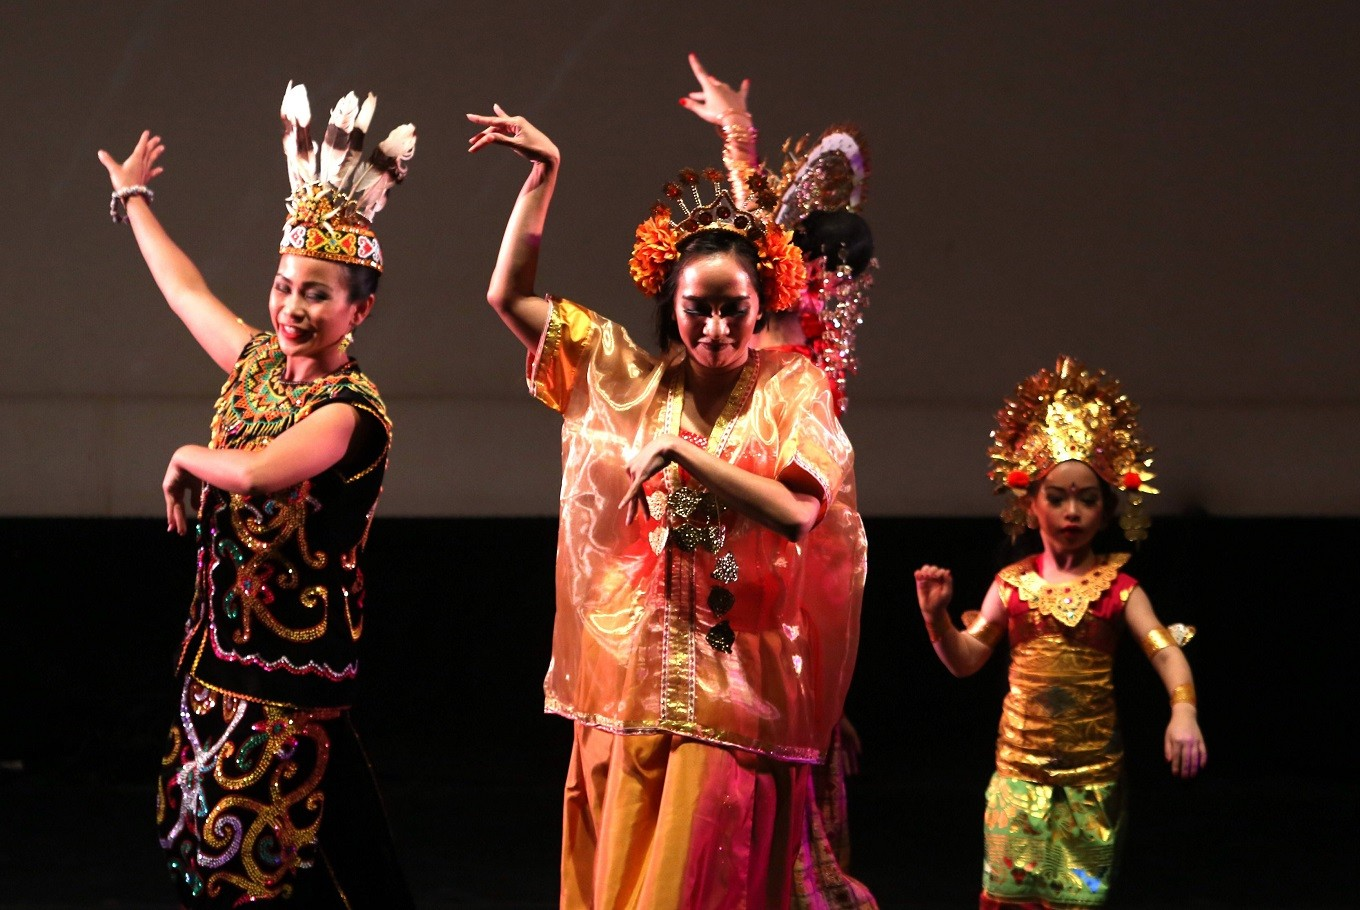 Choreographed by Josh Marcy, the piece showcased the beauty of diversity. JP/ Seto Wardhana